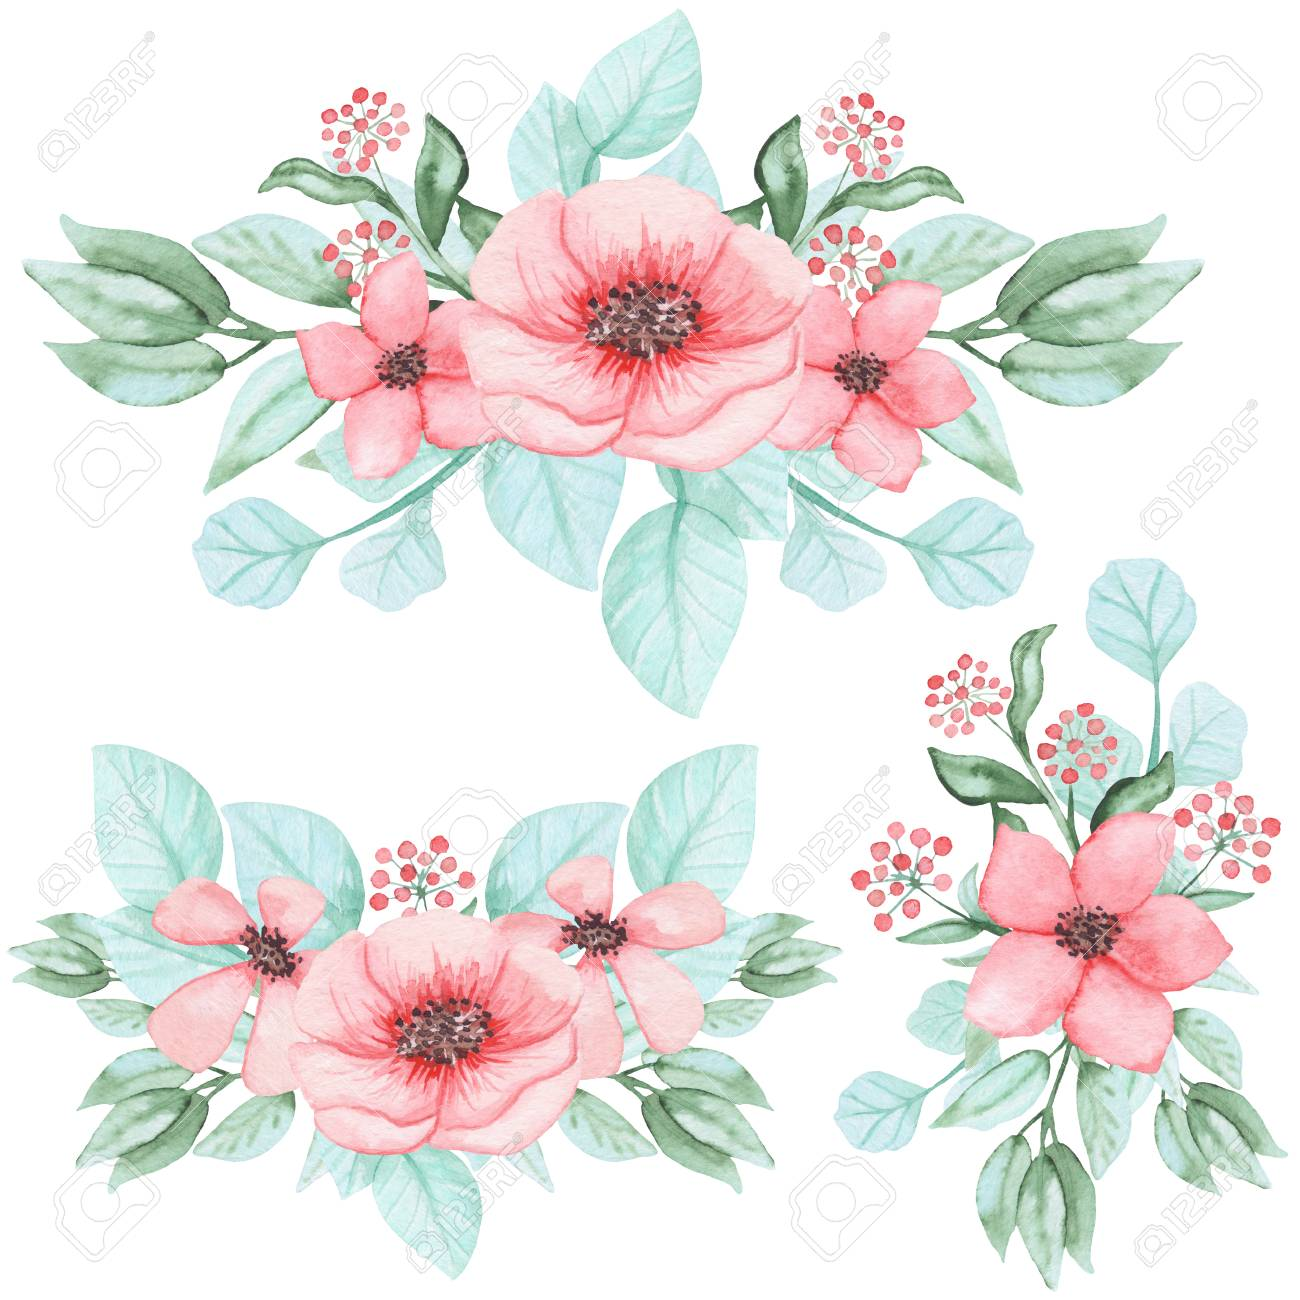 Set Of Watercolor Bouquets With Light Pink Flowers Stock Photo